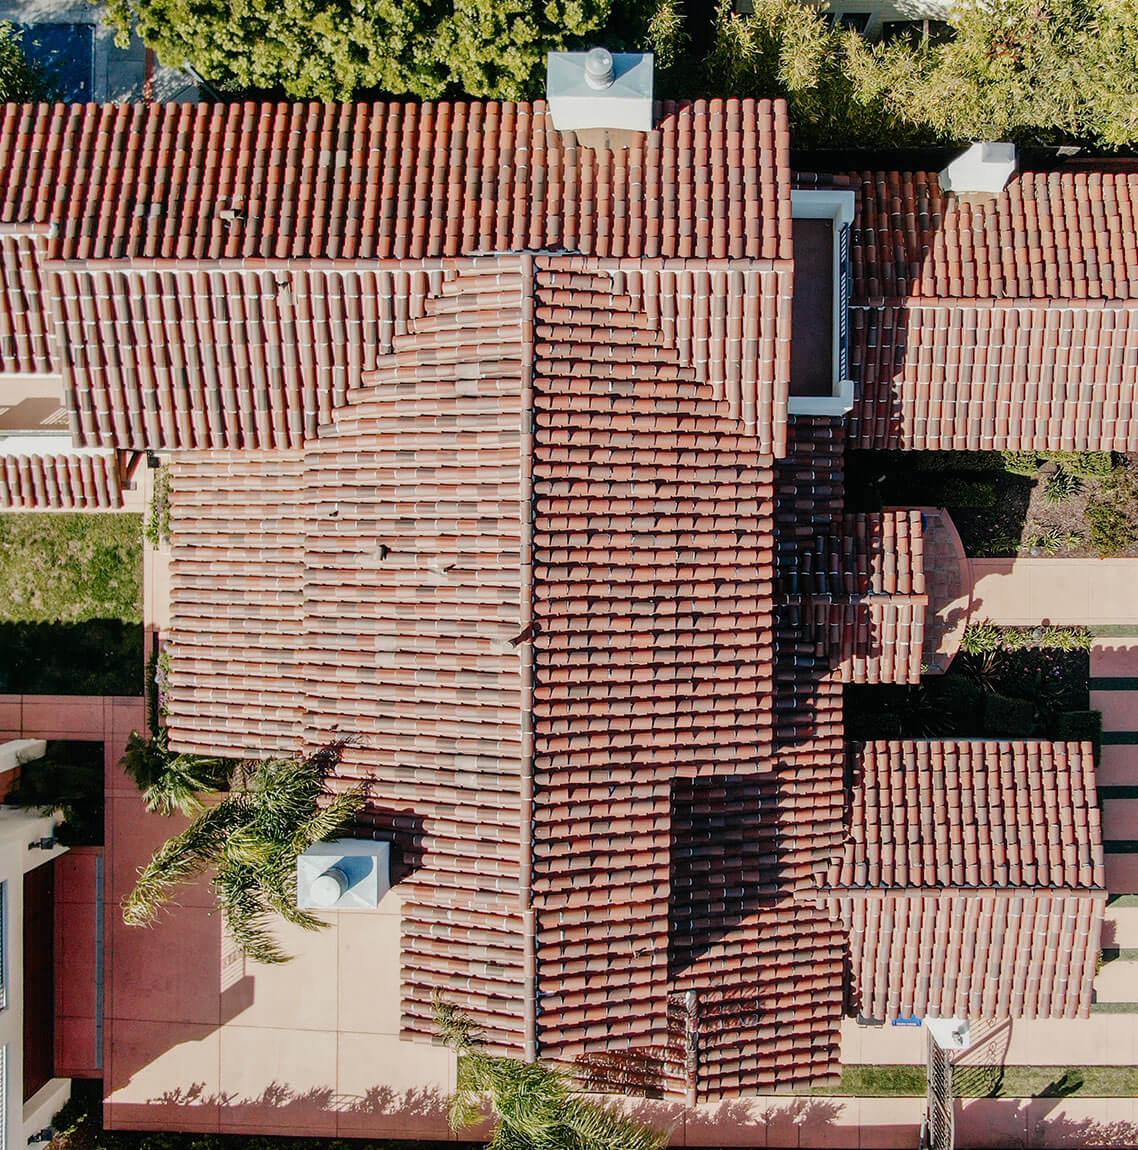 Tile Roofs 2